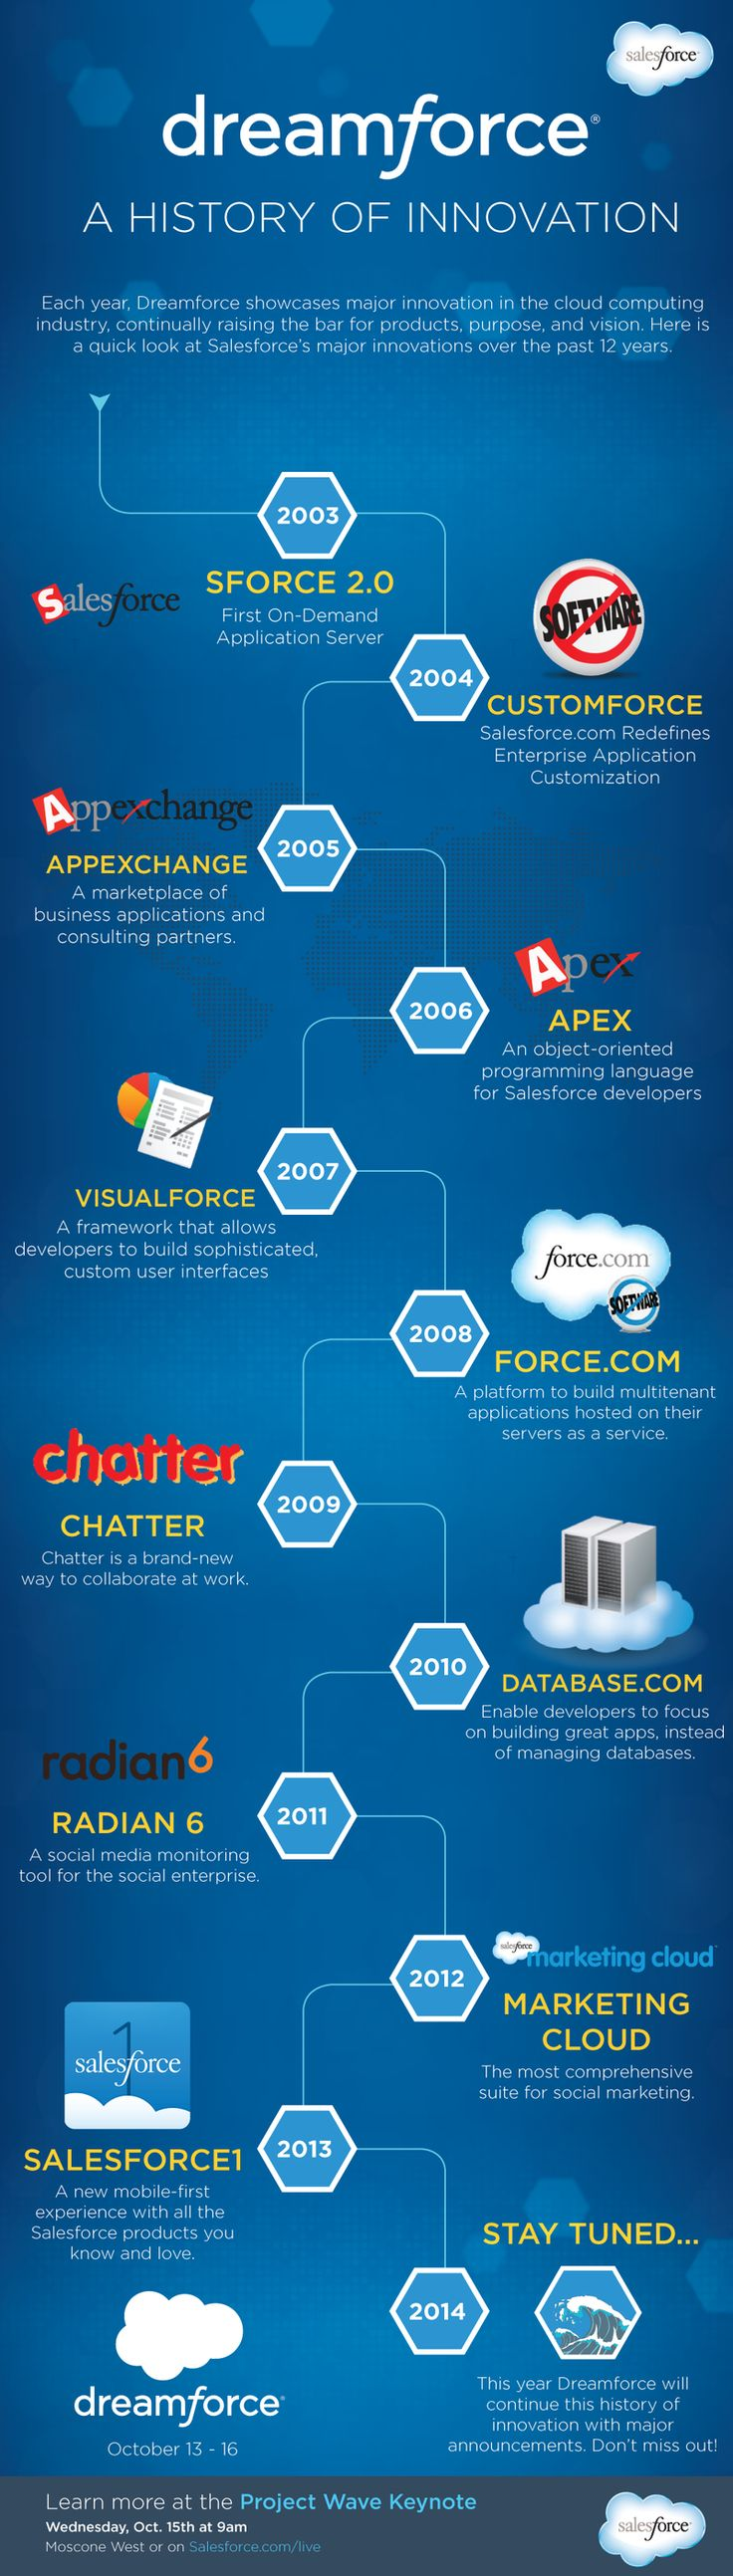 Dreamforce: A History of Innovation #infographic #DF14